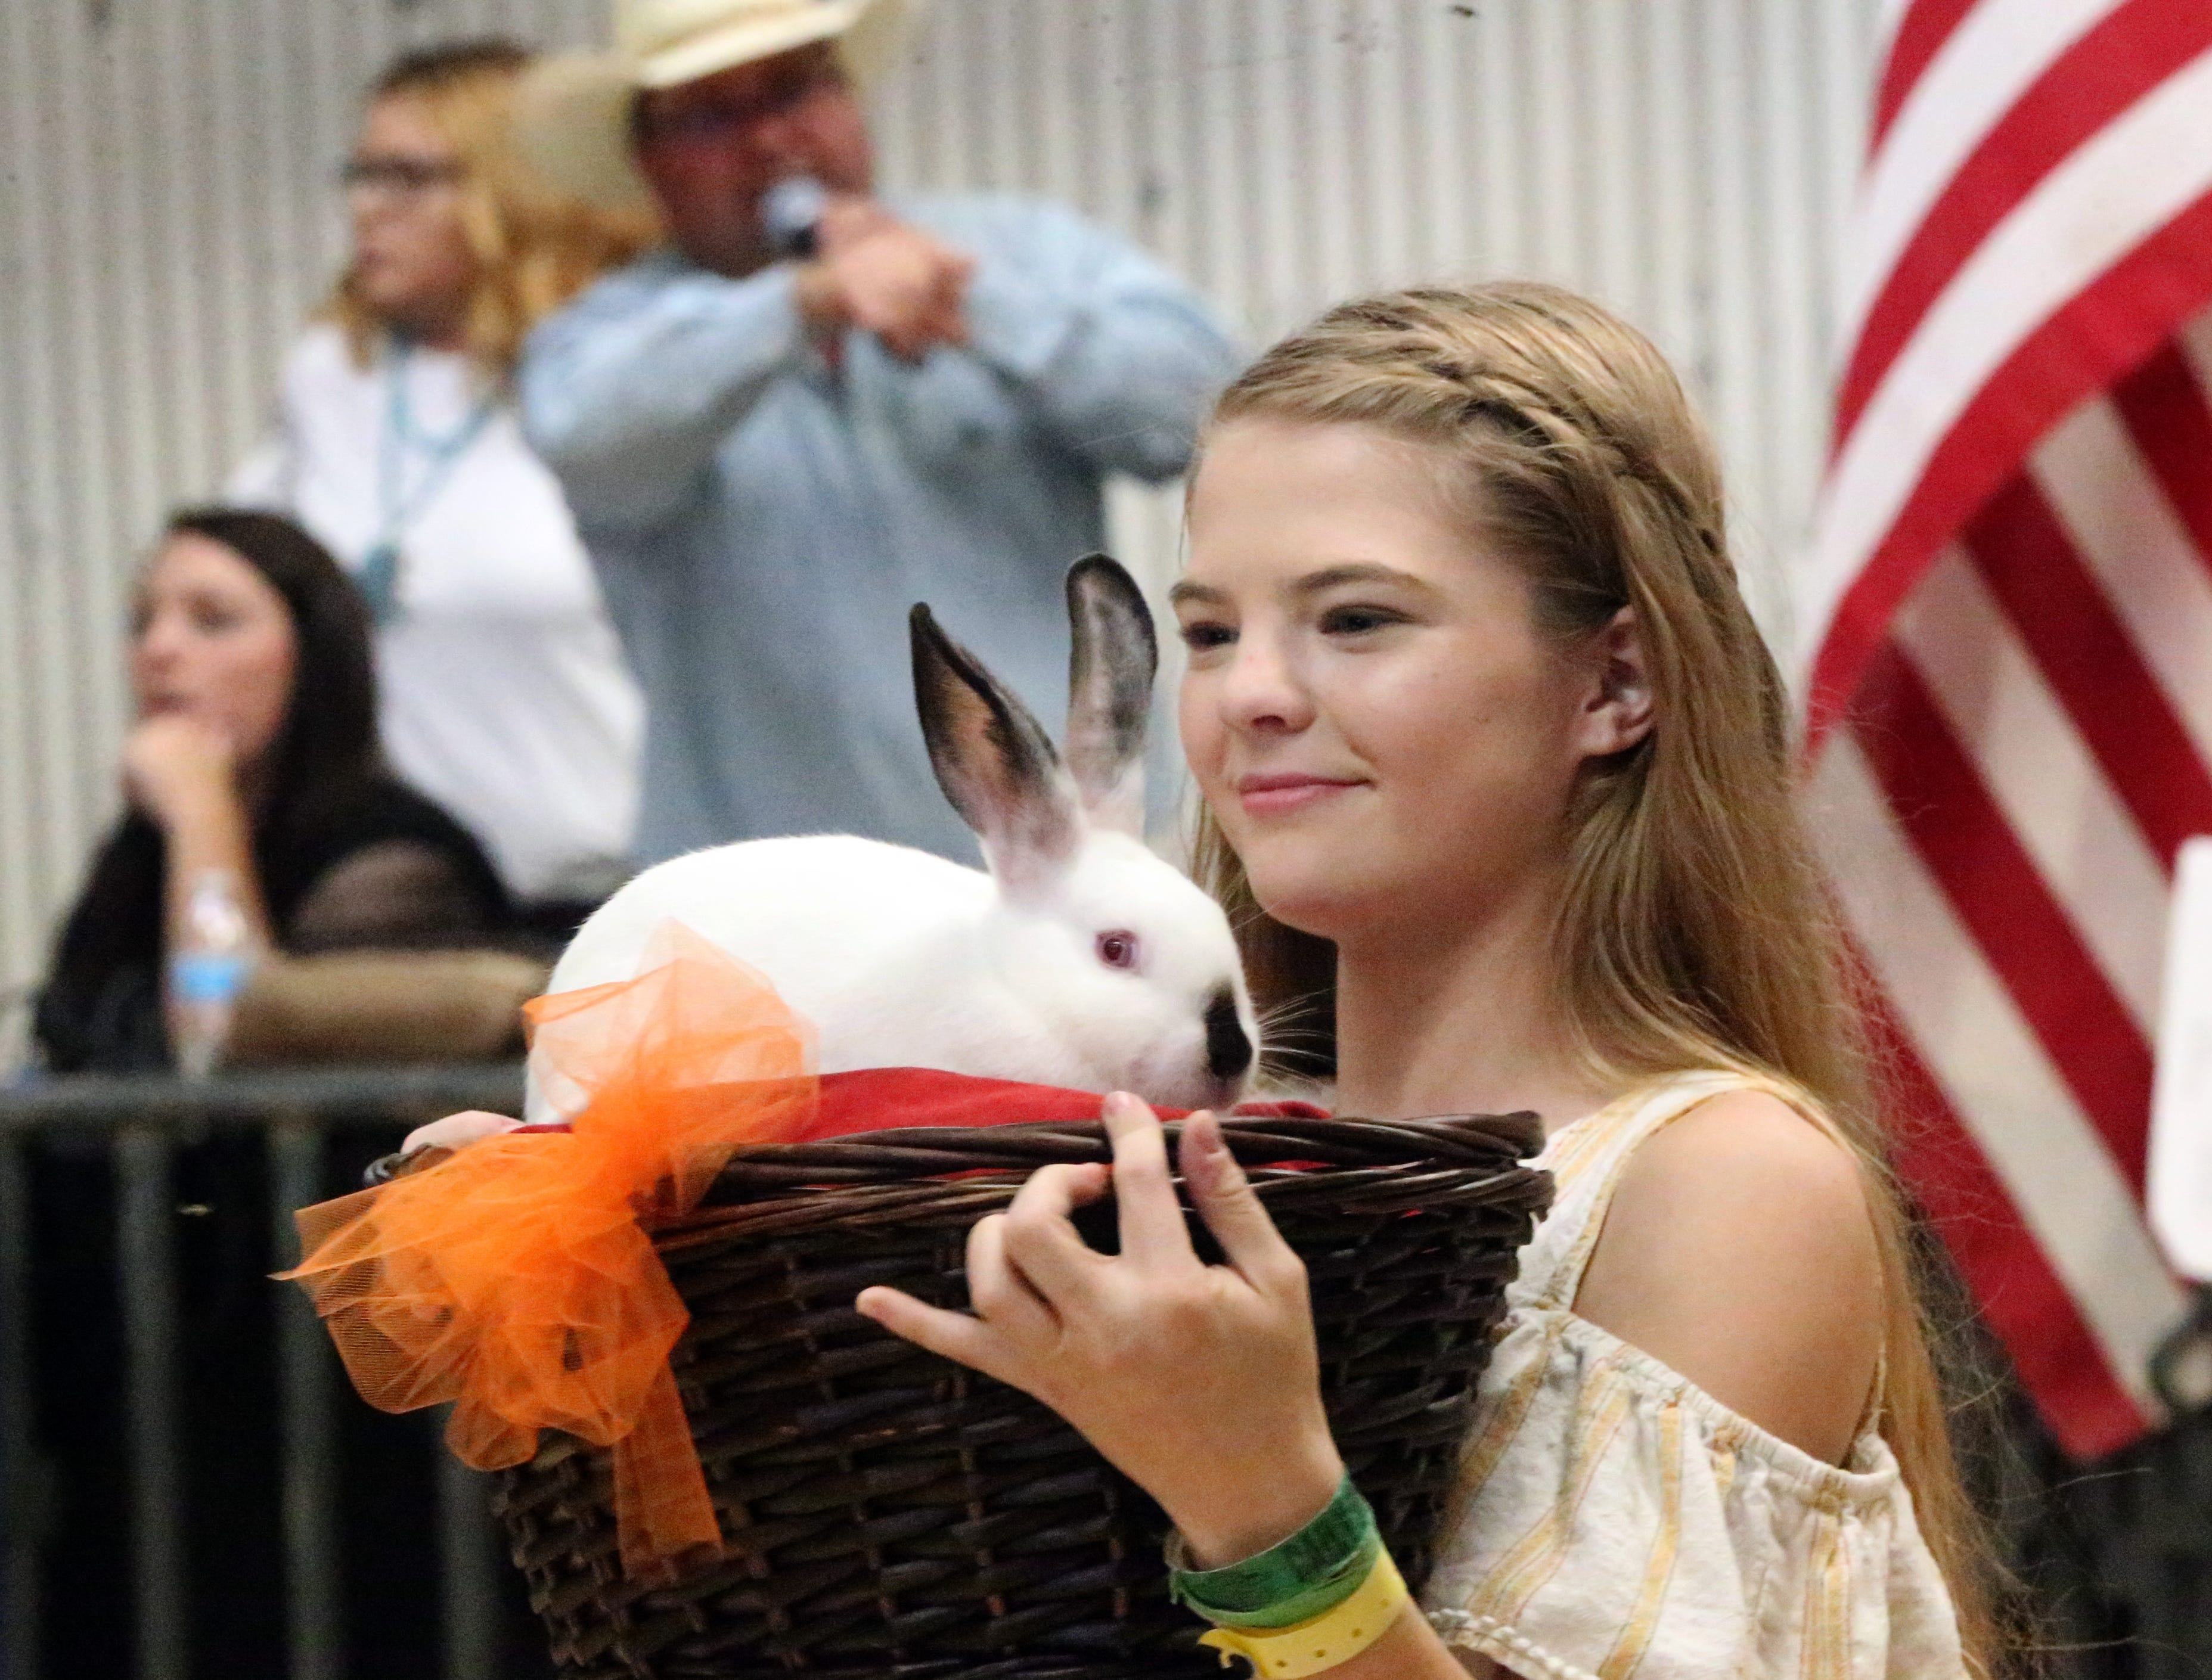 Shelby Gillette of Doña Ana, N.M., shows her grand champion California rabbit during the El Paso County Fair & Junior Livestock Show auction Saturday in the El Paso County Judging Arena behind the County Coliseum. The animal auctioned for $1,100. A variety of animals, including market steers, market hogs, market lambs and goats, as well as poultry and waterfowl, were auctioned off from young people from El Paso, Hudspeth, Culberson and Doña Ana counties, said Jeep Darnell of the El Paso County Fair Association. The fair and auction have been held for over 50 years, Darnell said.